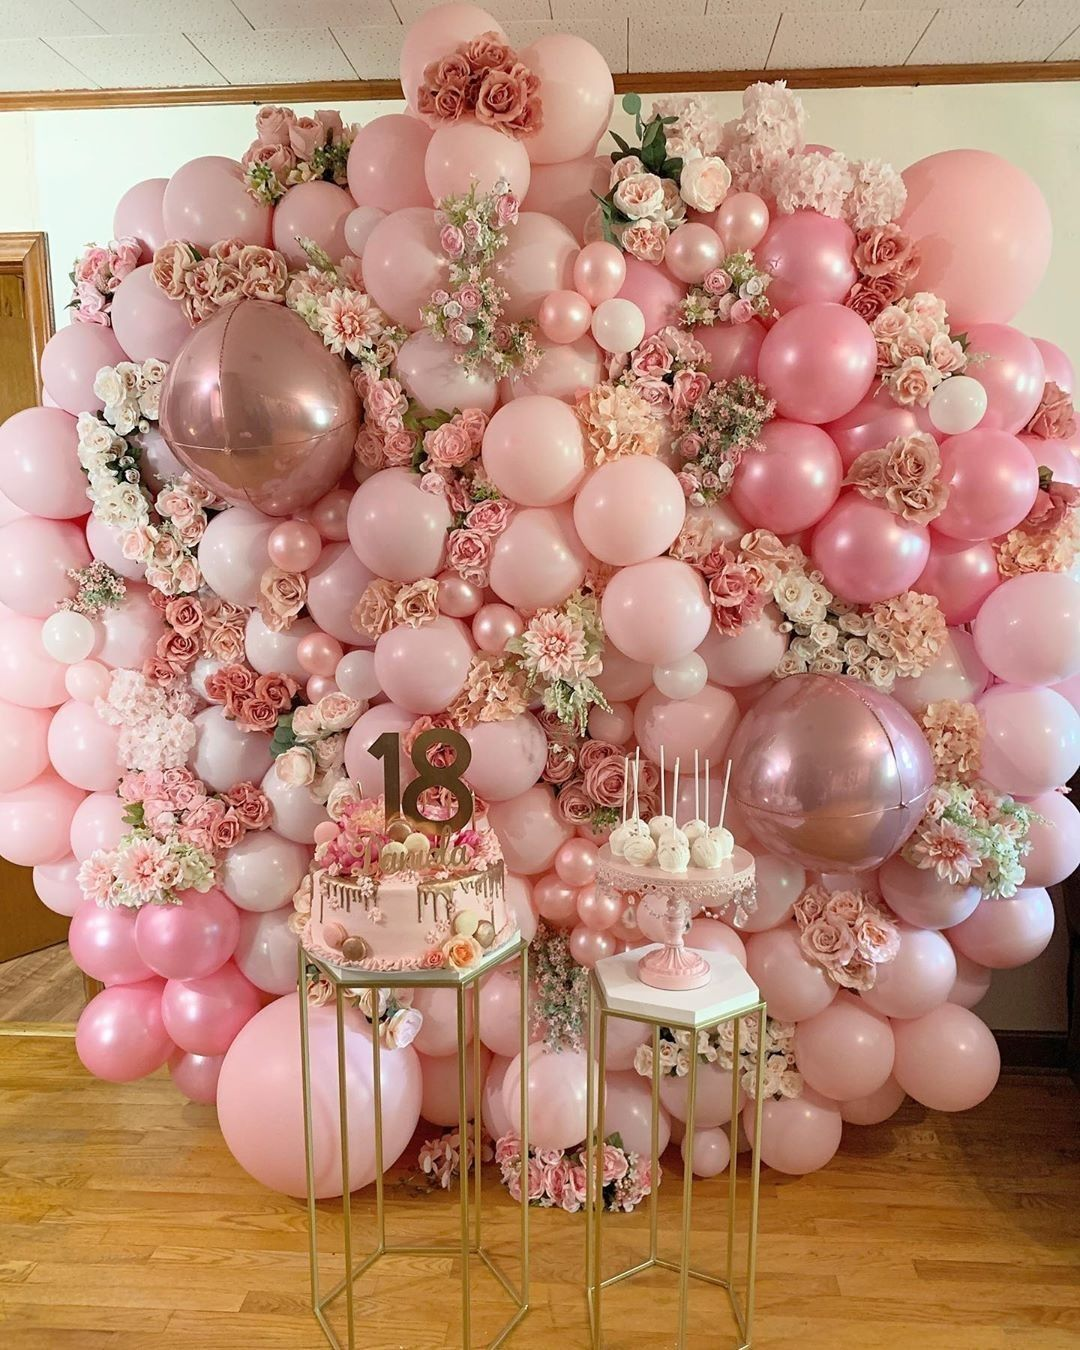 Best Balloon Party Styling Amazing Birthday Party Decoration Balloon Garland Event Ideas Balloons Balloon Balloonb In 2020 Balloons Pink Balloons Balloon Garland